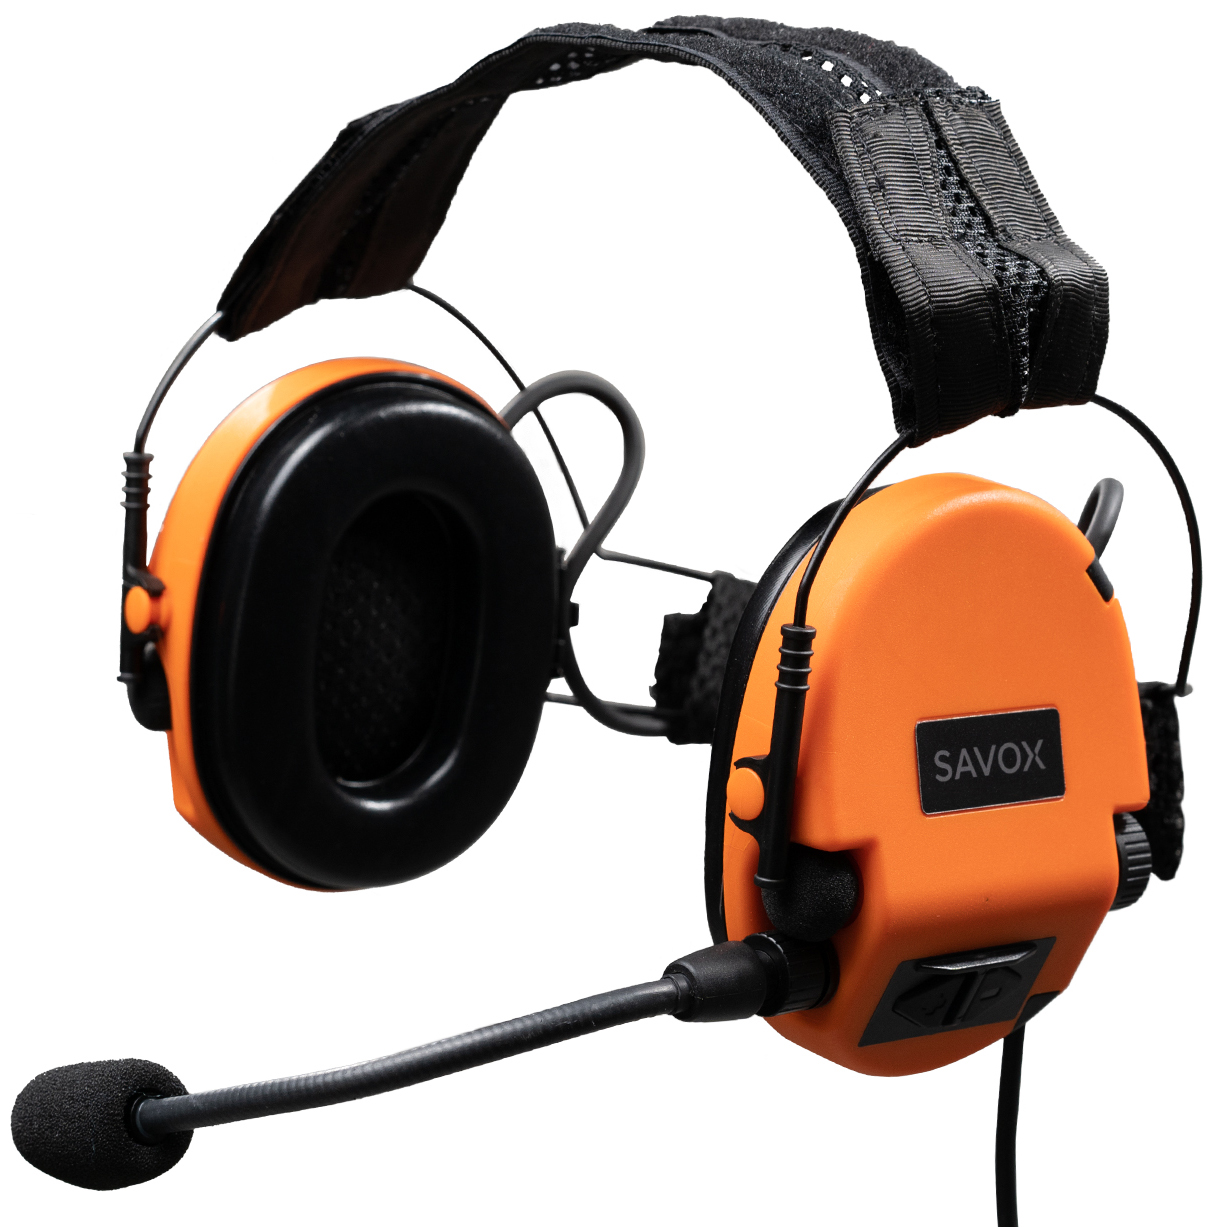 NOISE-COM 200 Hearing Protection Headset in Orange color.